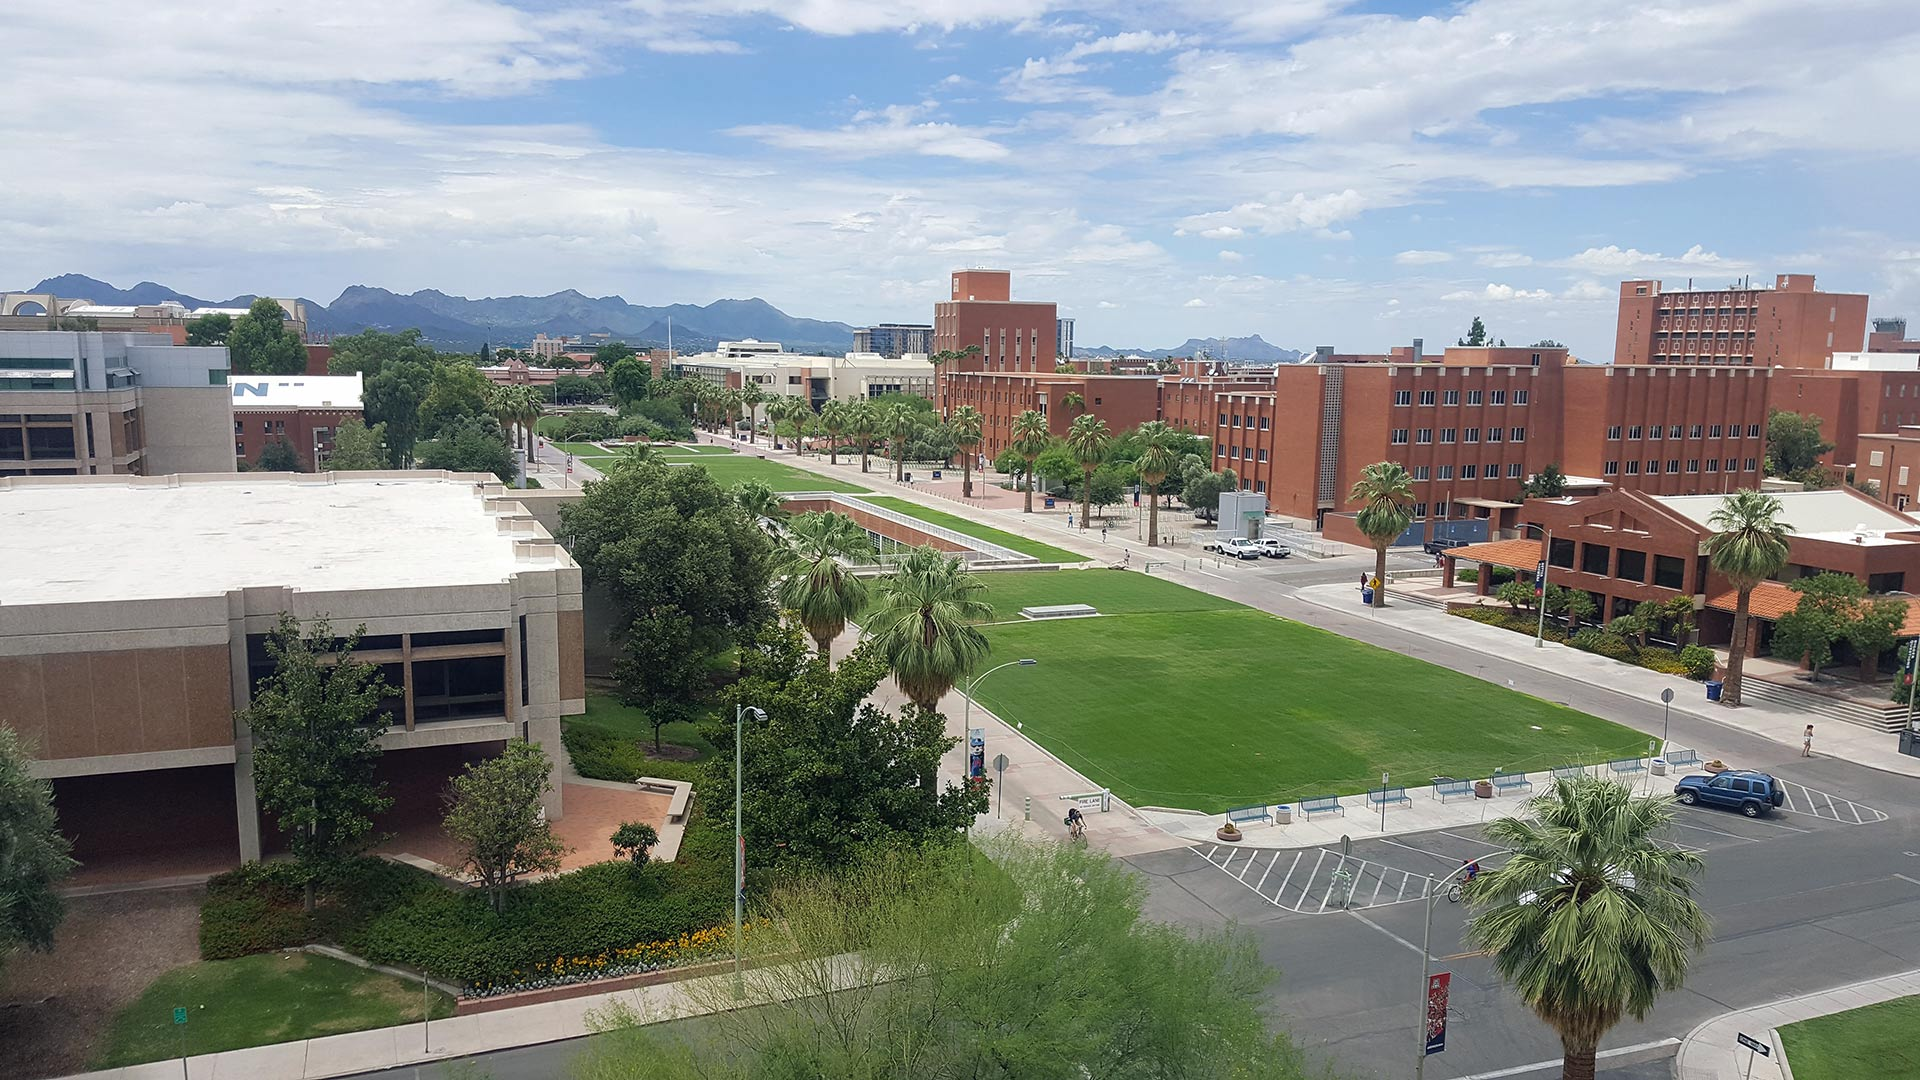 The University of Arizona campus.